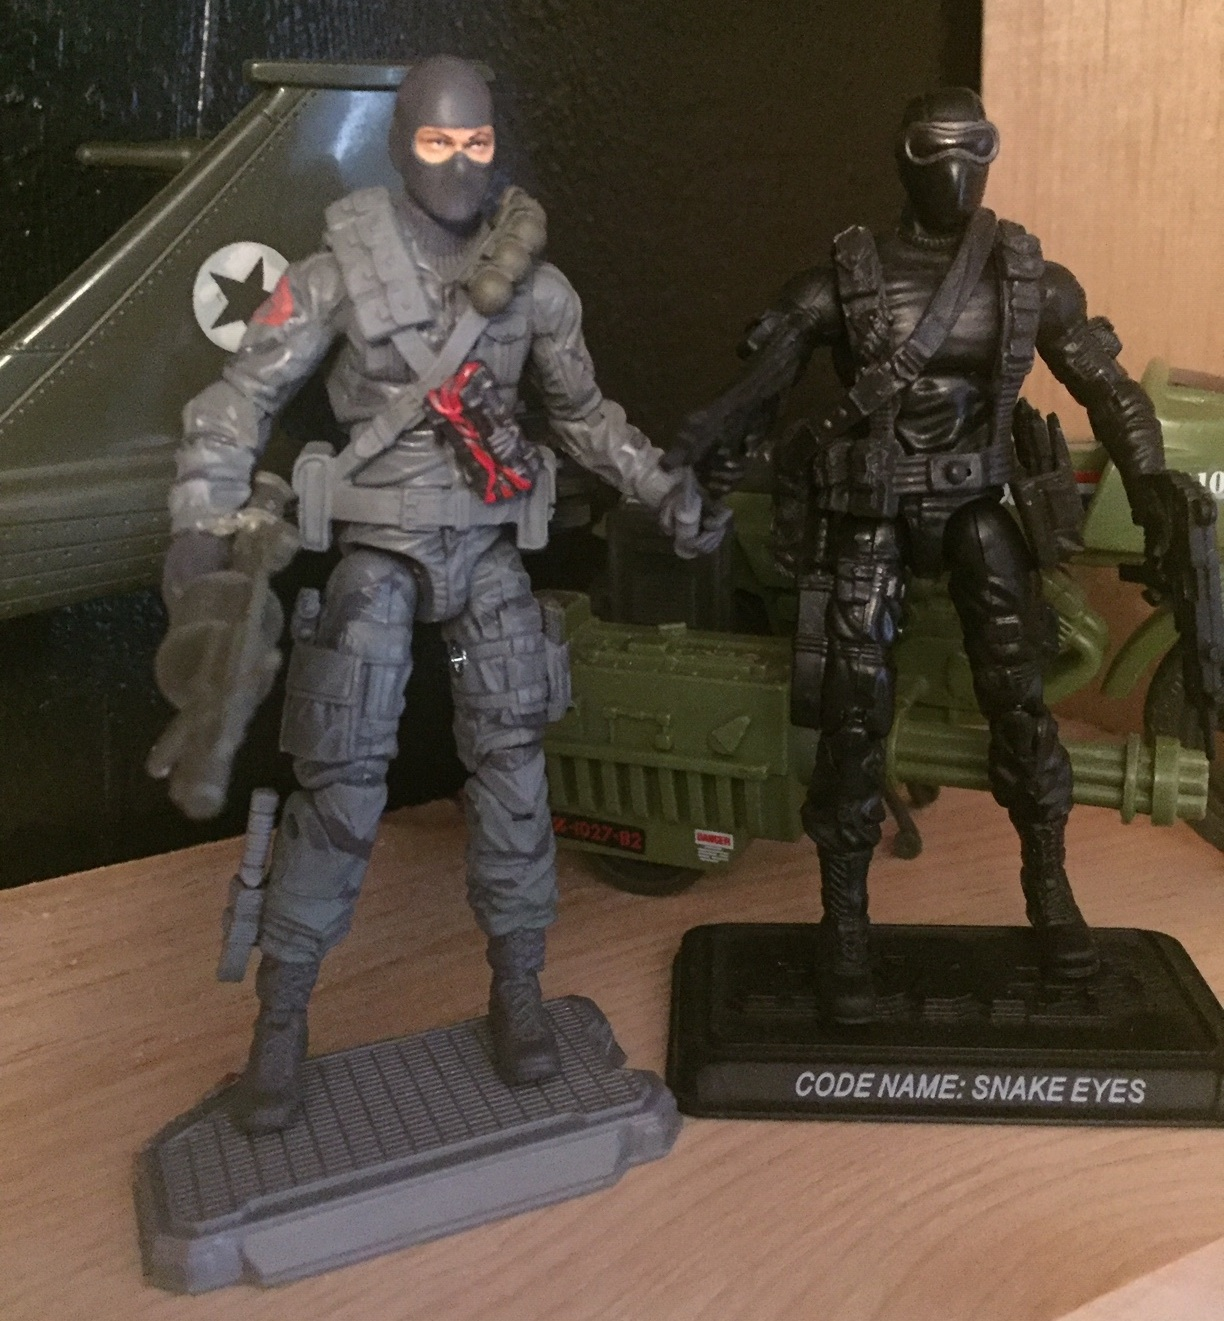 G.I. Joe Firefly (2015) and Snake eyes (2007) from the when it was cool collection